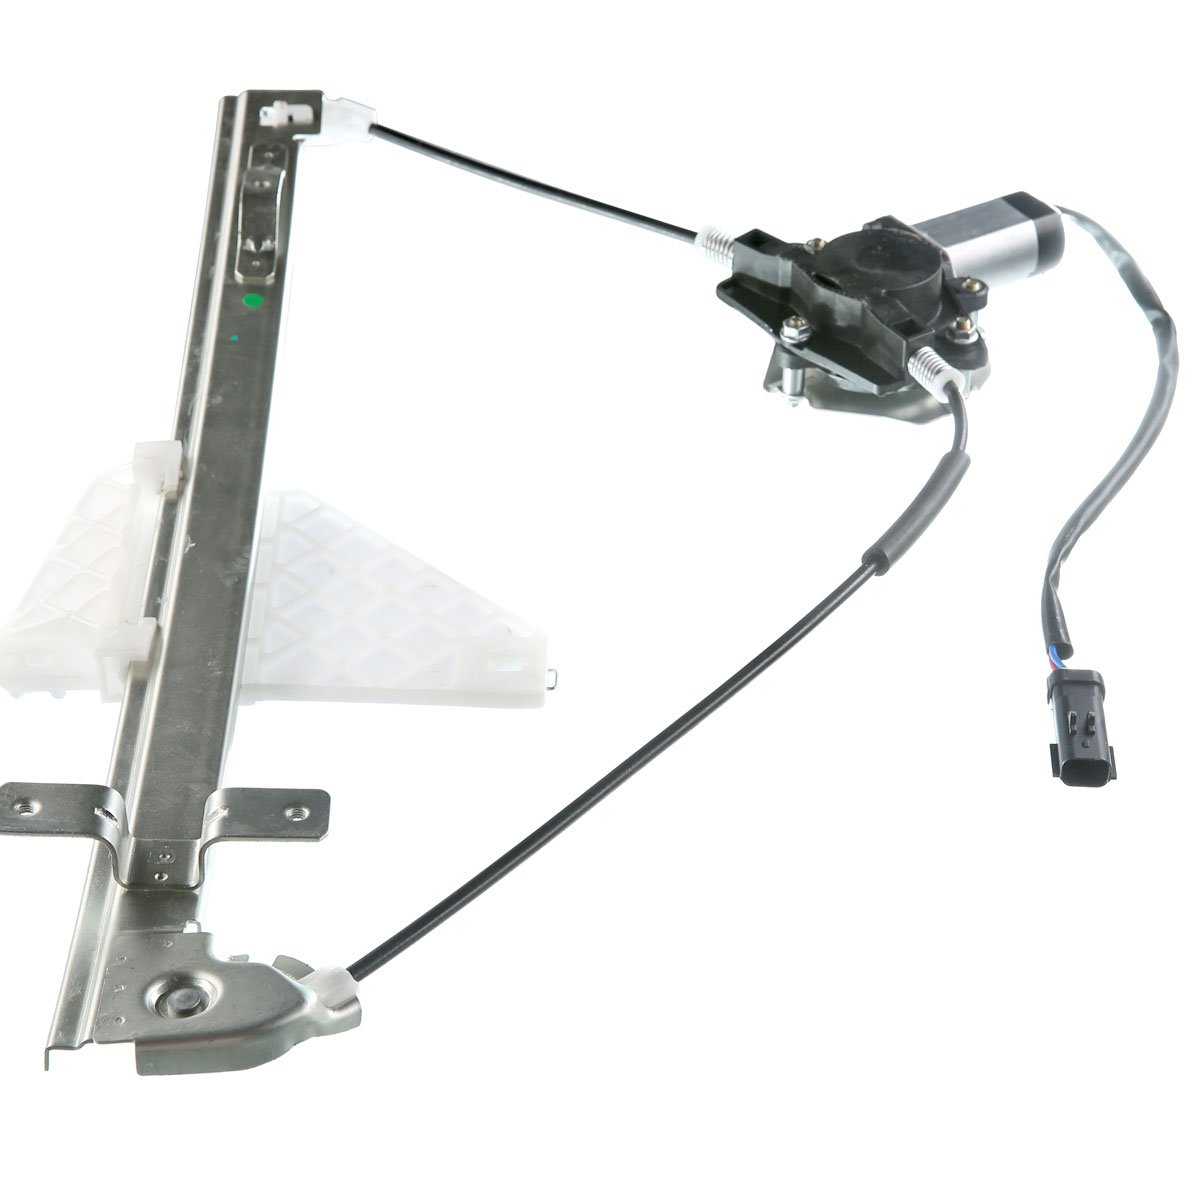 A-Premium Power Window Regulator With Motor for Jeep Grand/Cherokee 1999-2000 Rear Right Passenger Side